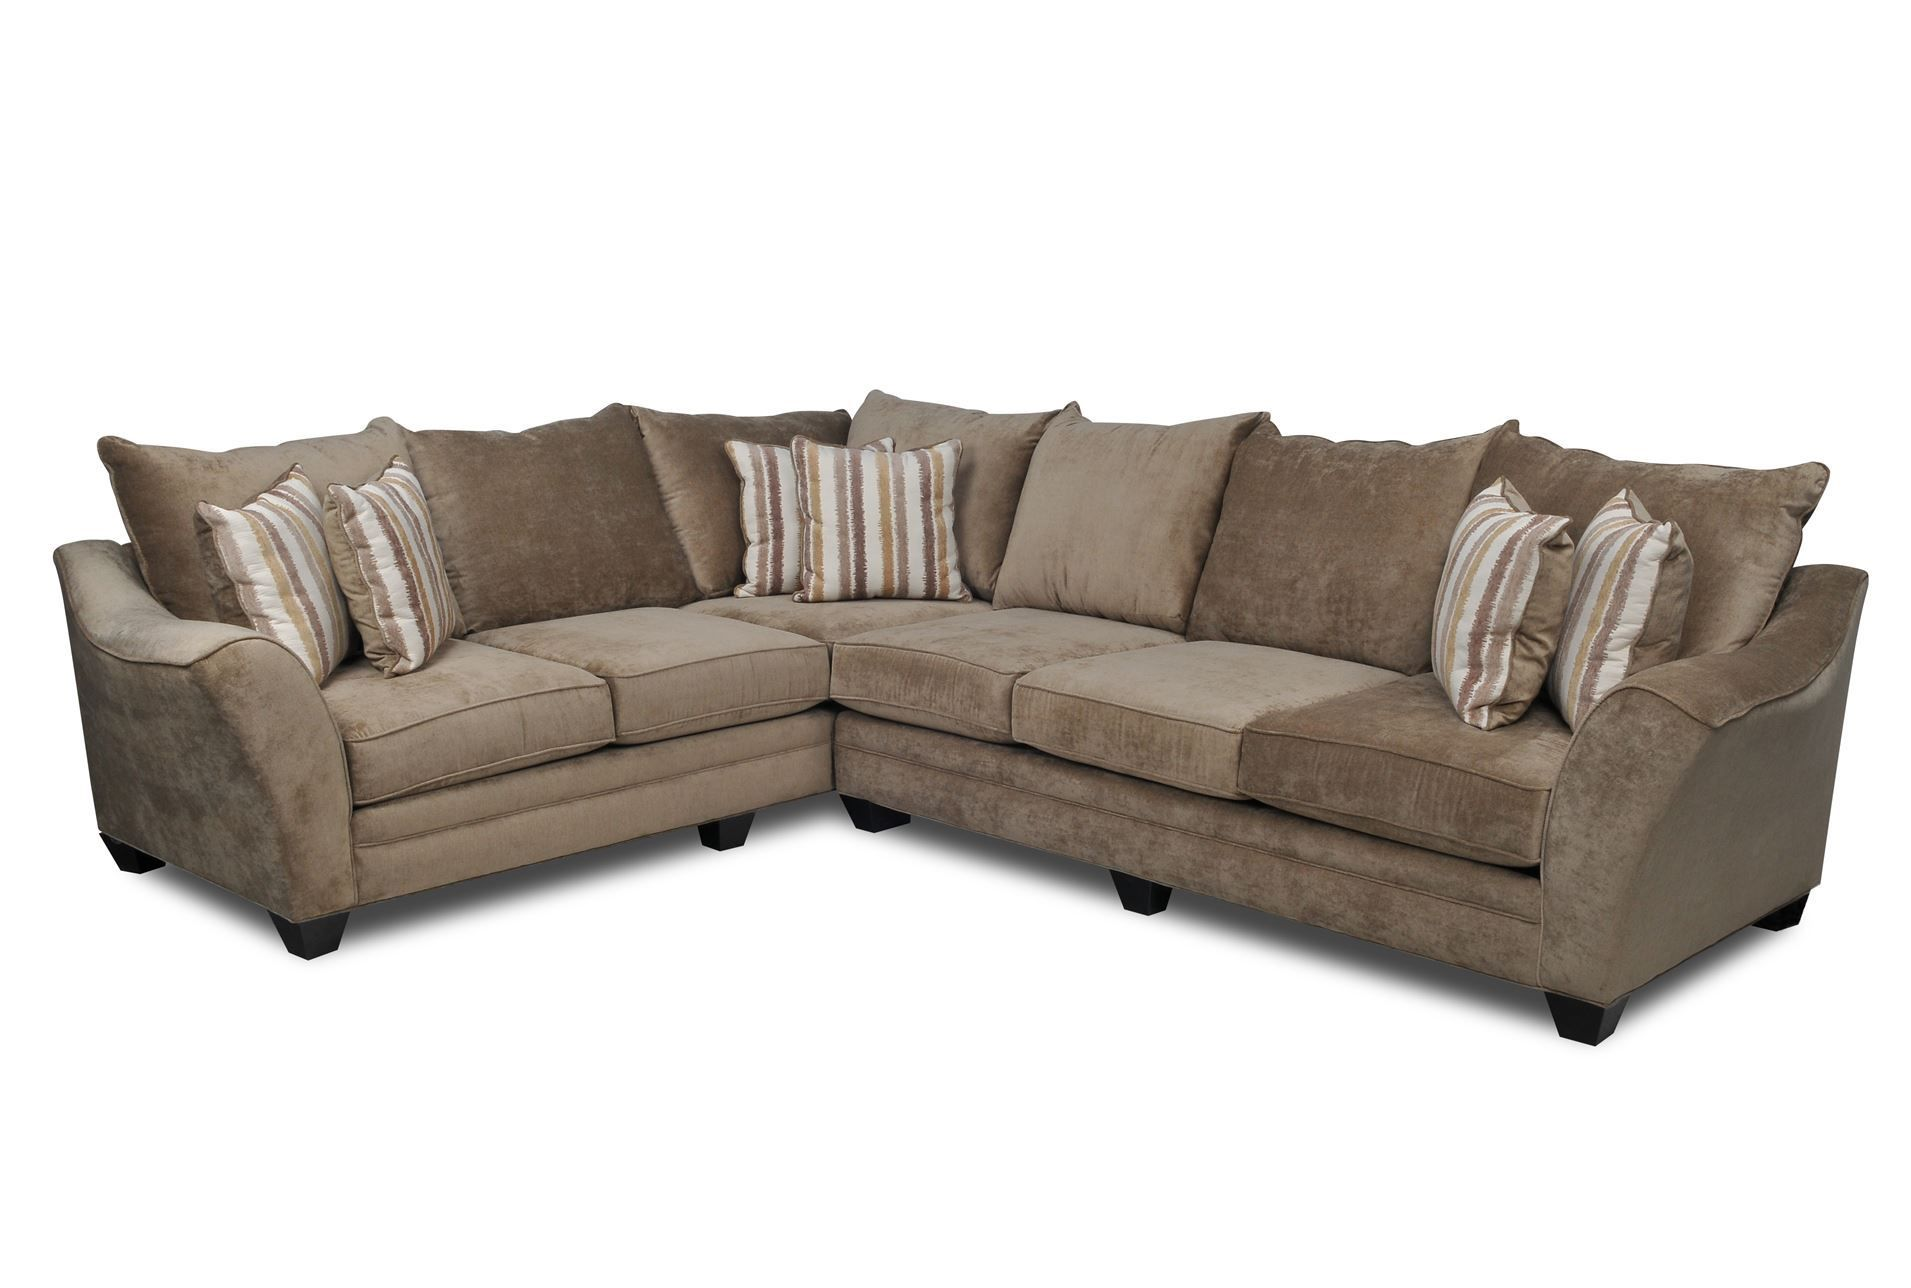 Buchanan Sofa With Chaise Sofas Nashville Tn Finally Found My Couch Getting This A